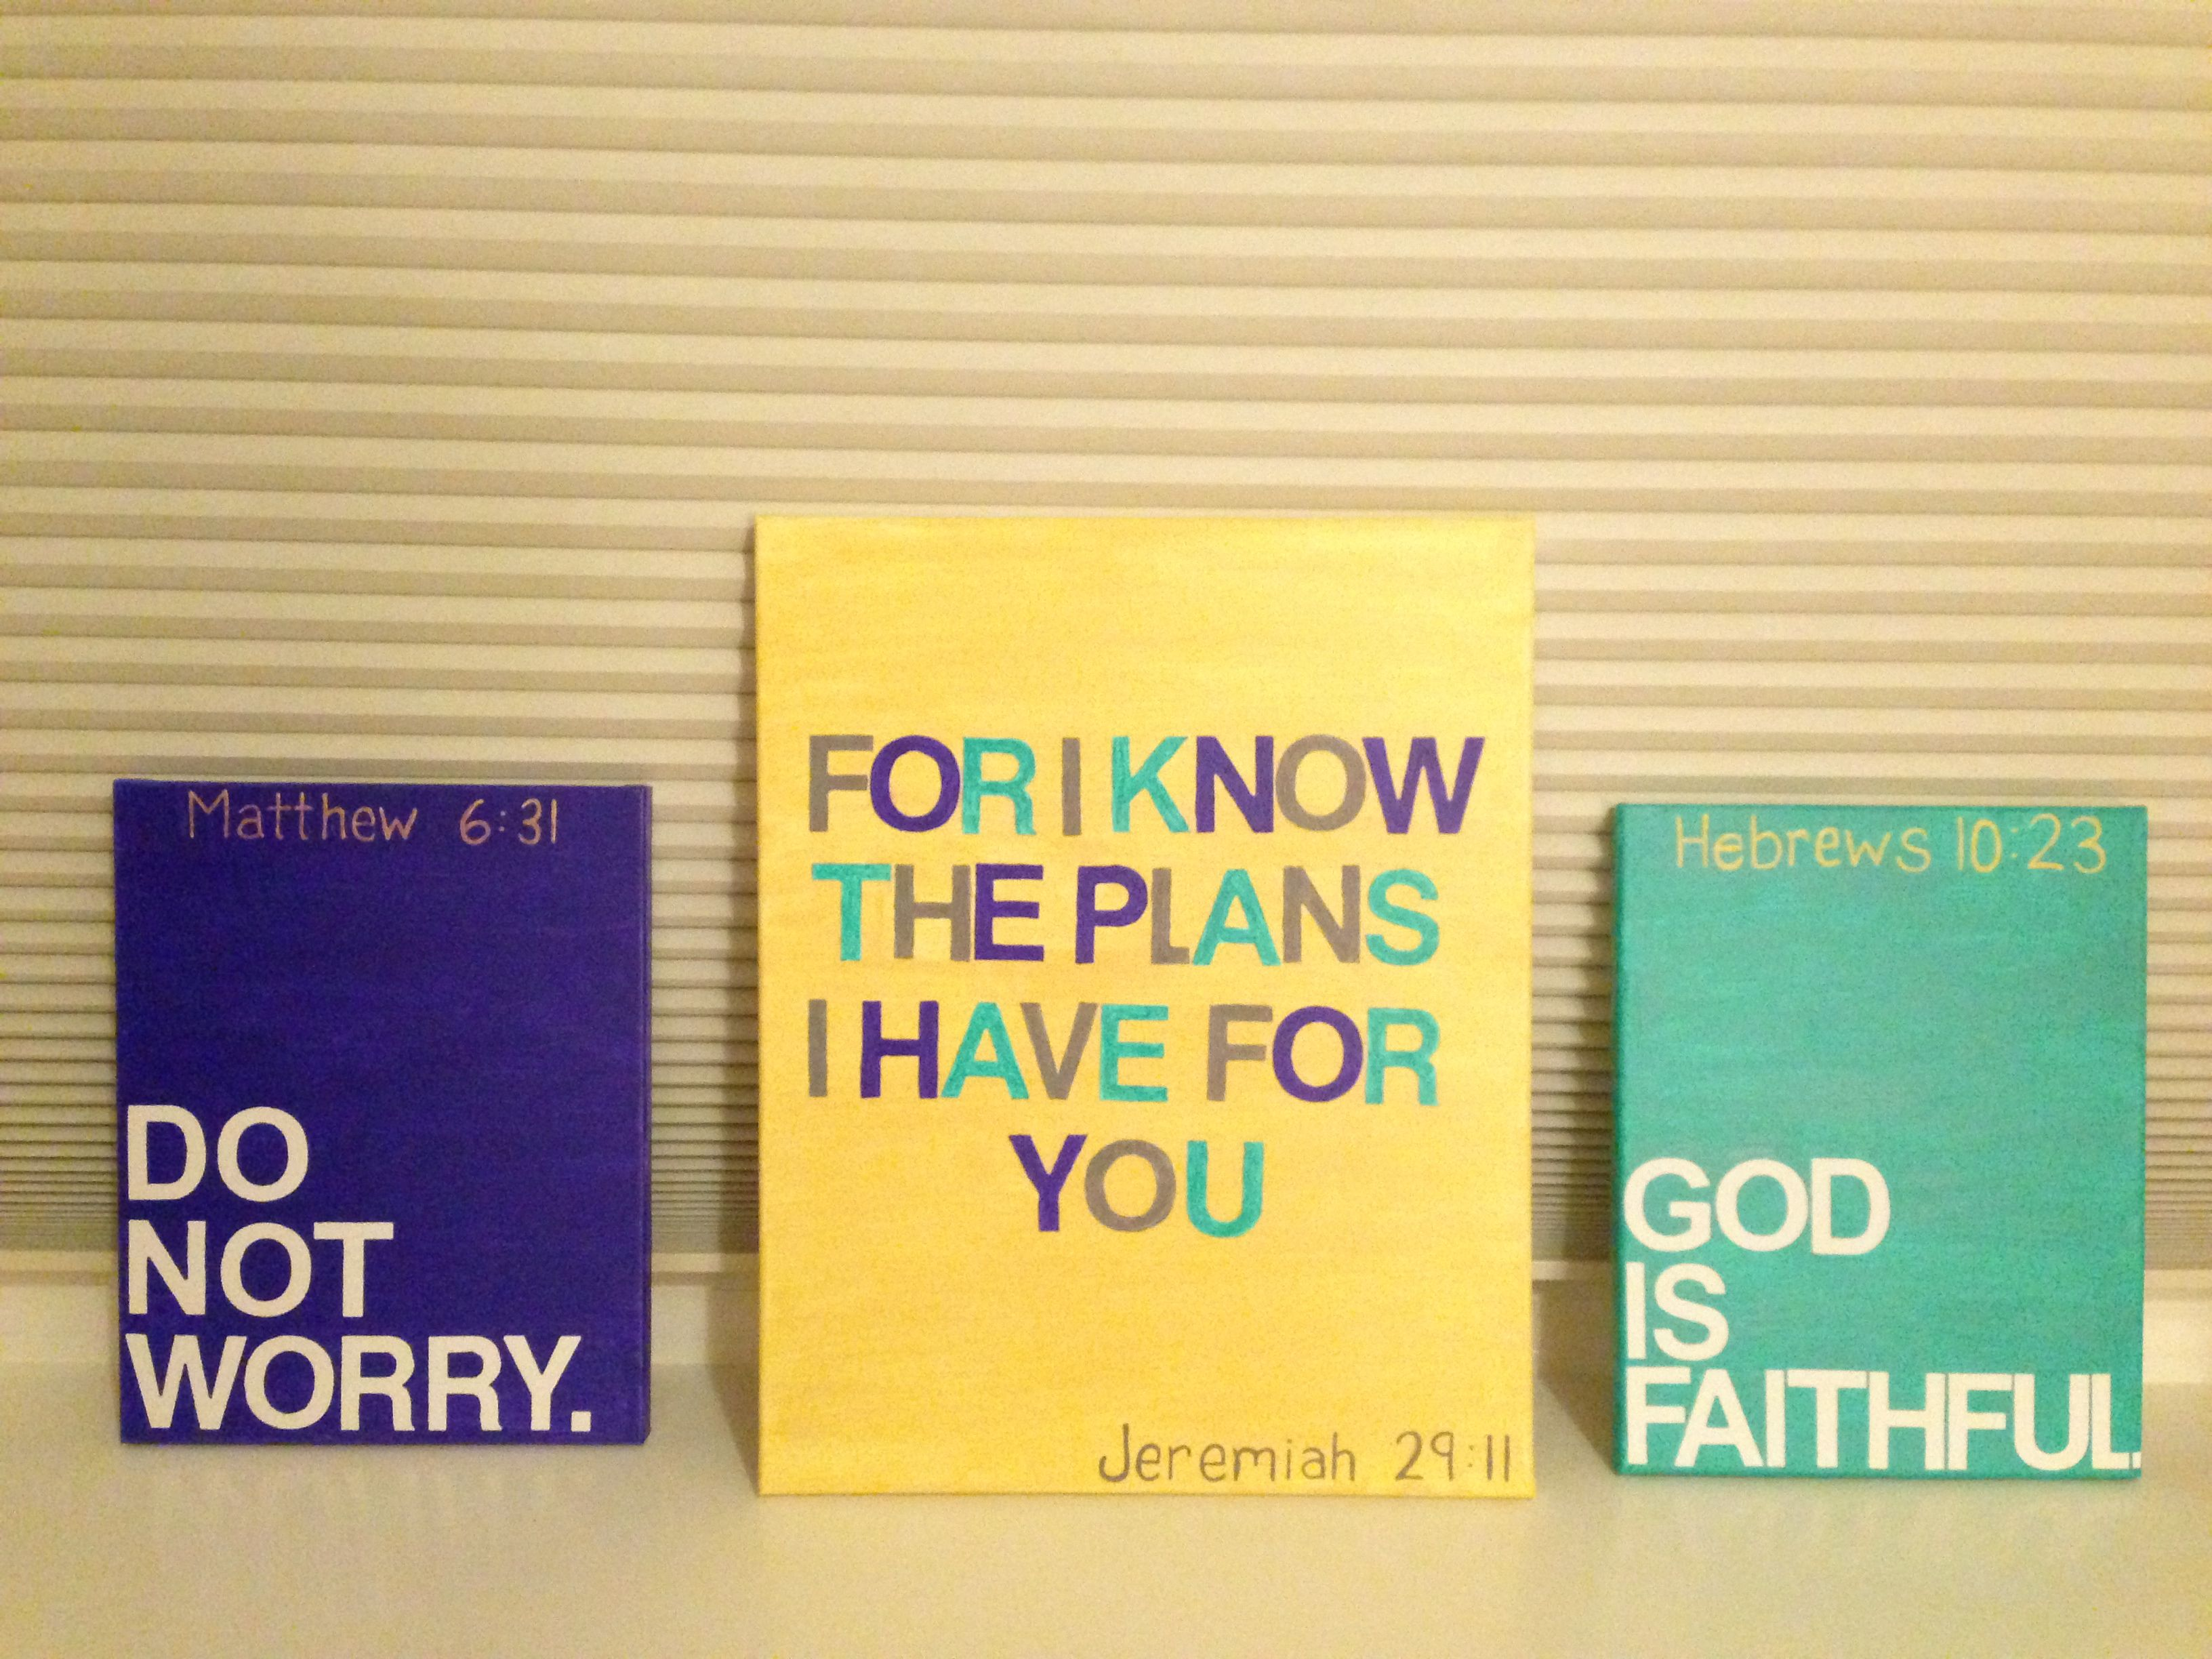 For my dorm wall GOD IS FAITHFUL: do DIY craft with adhesive letters ...